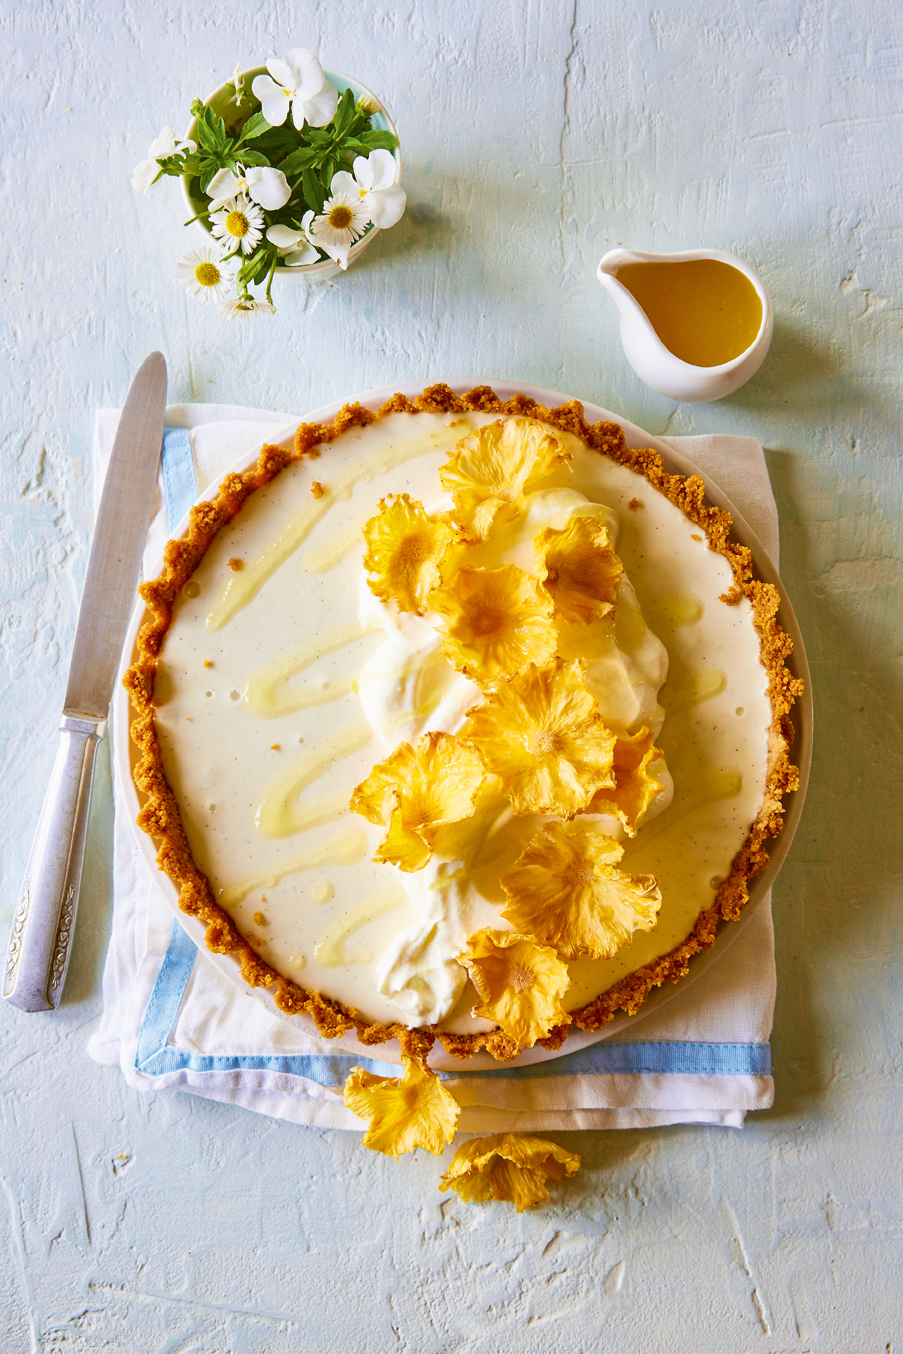 Coconut Panna Cotta Tart With Pineapple Cream